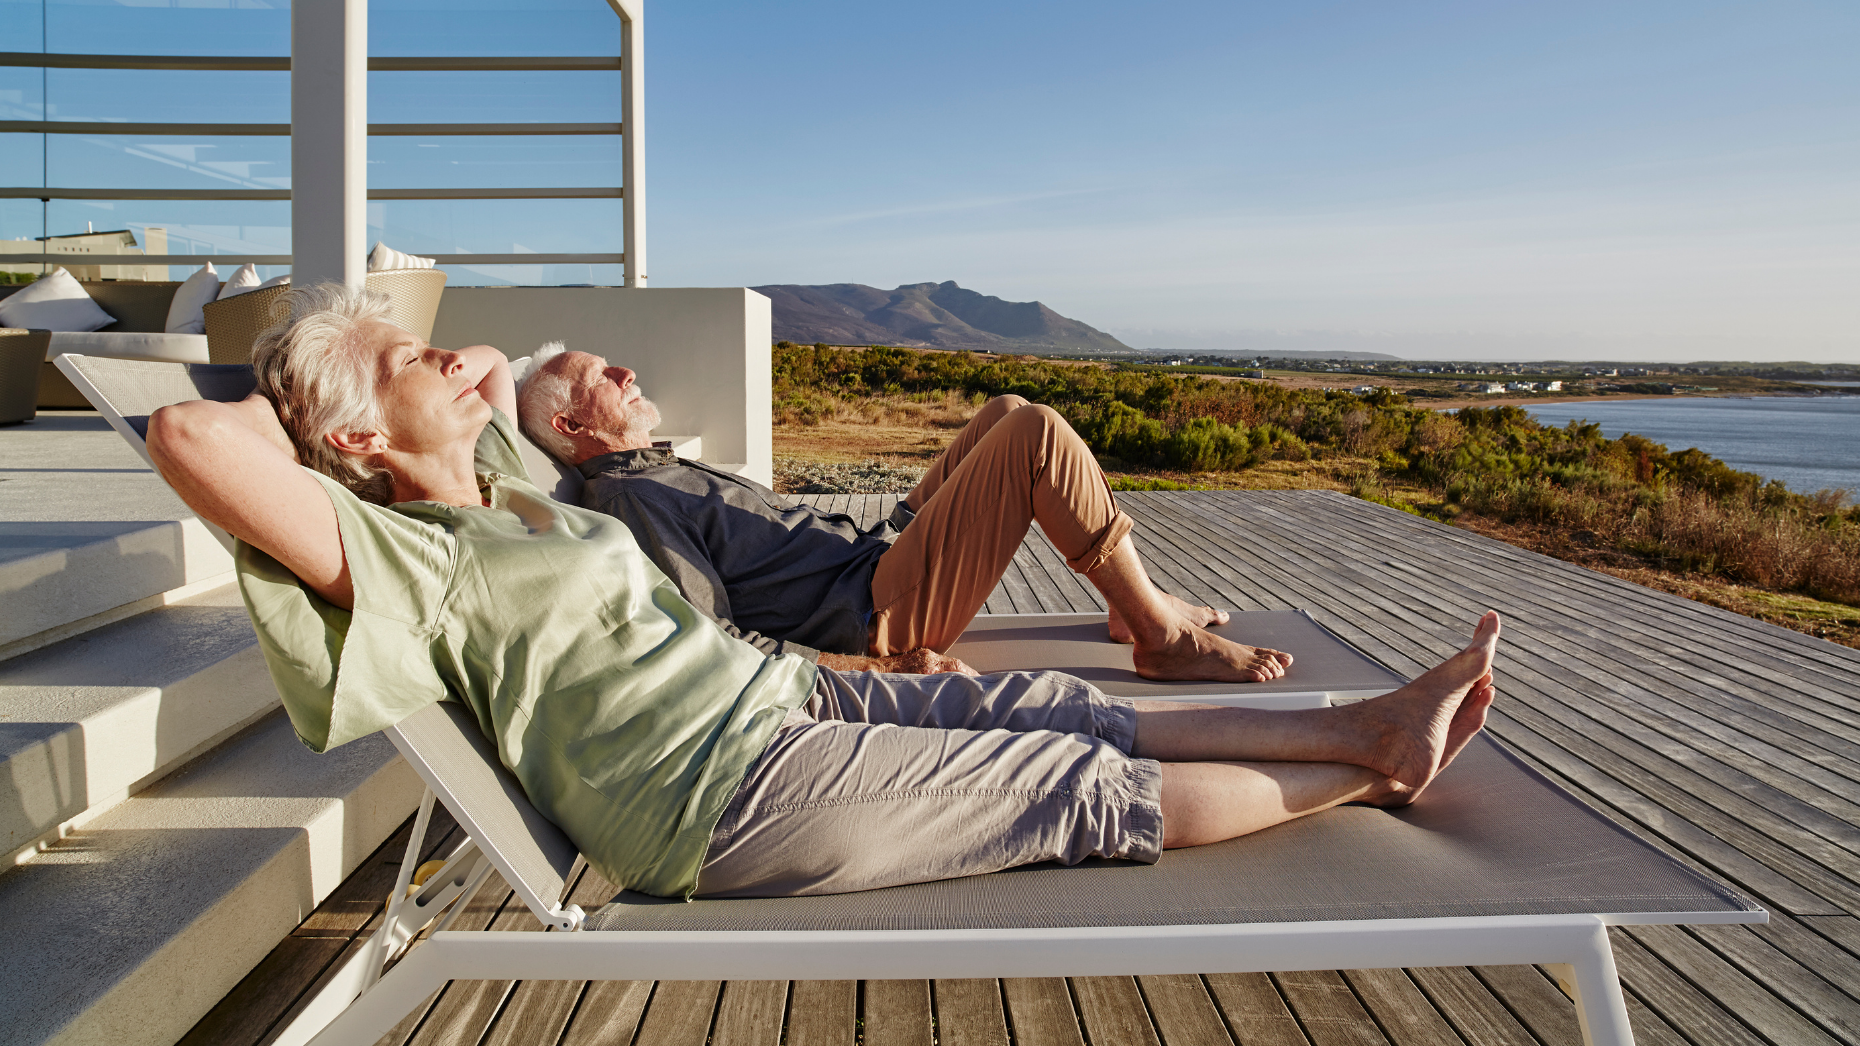 What do retirees want? Short-term-rental-free communities